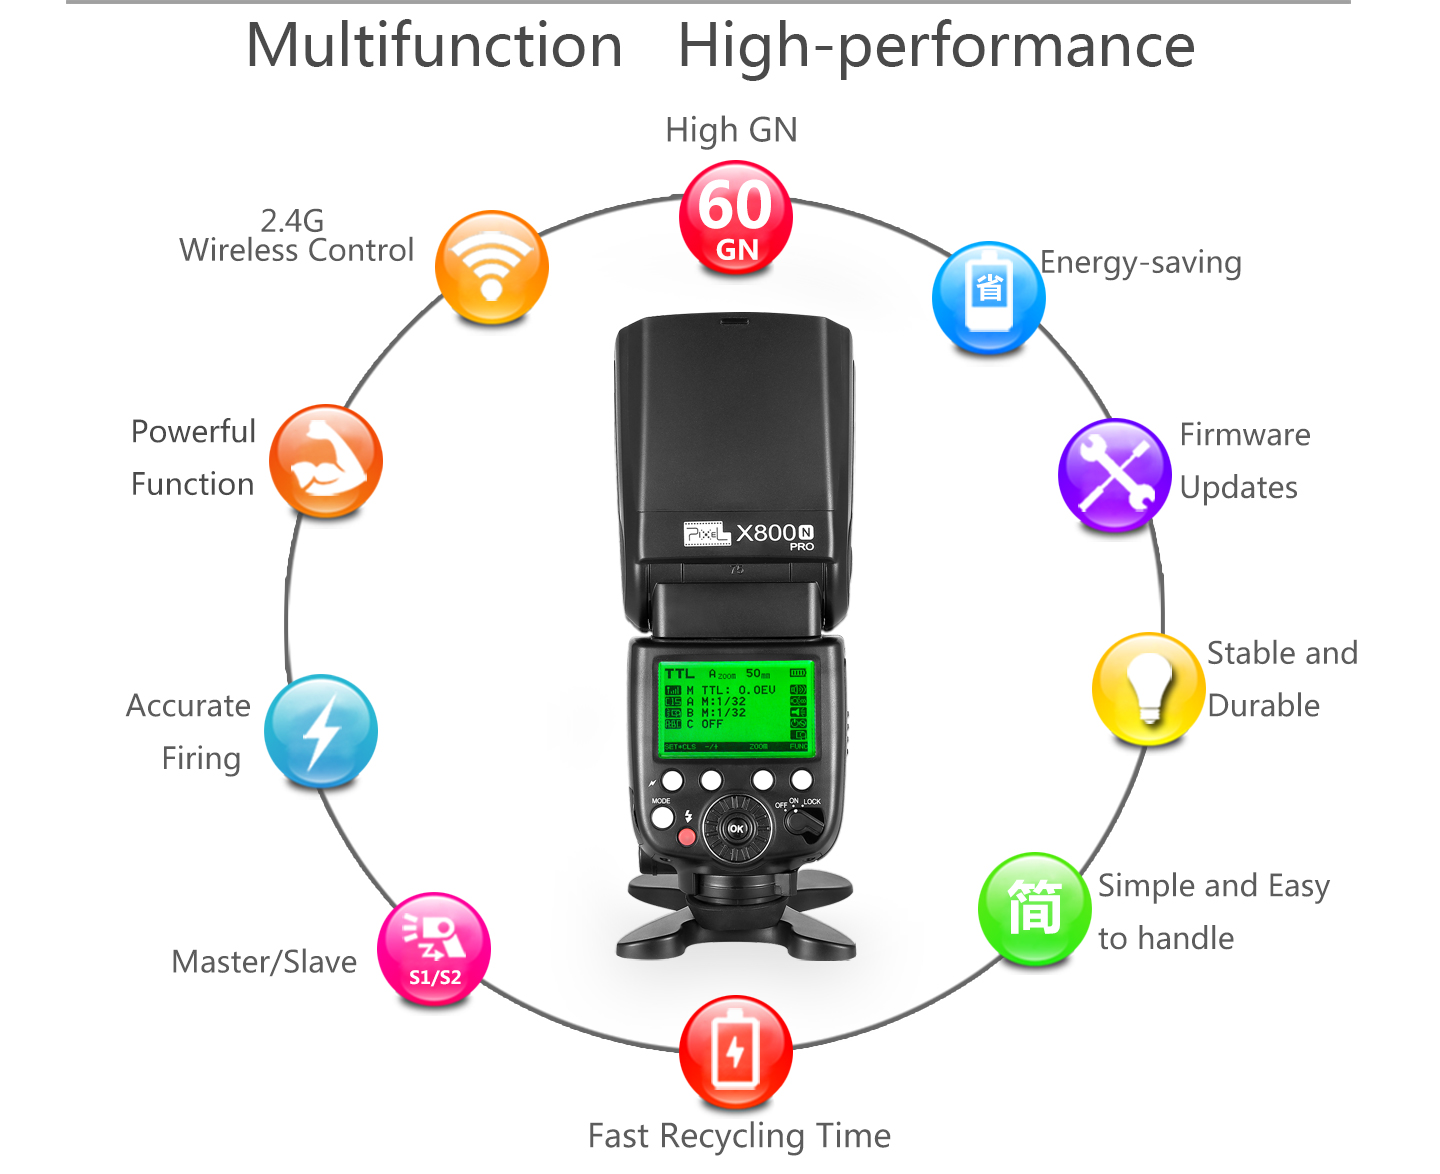 Multifunction High-performance